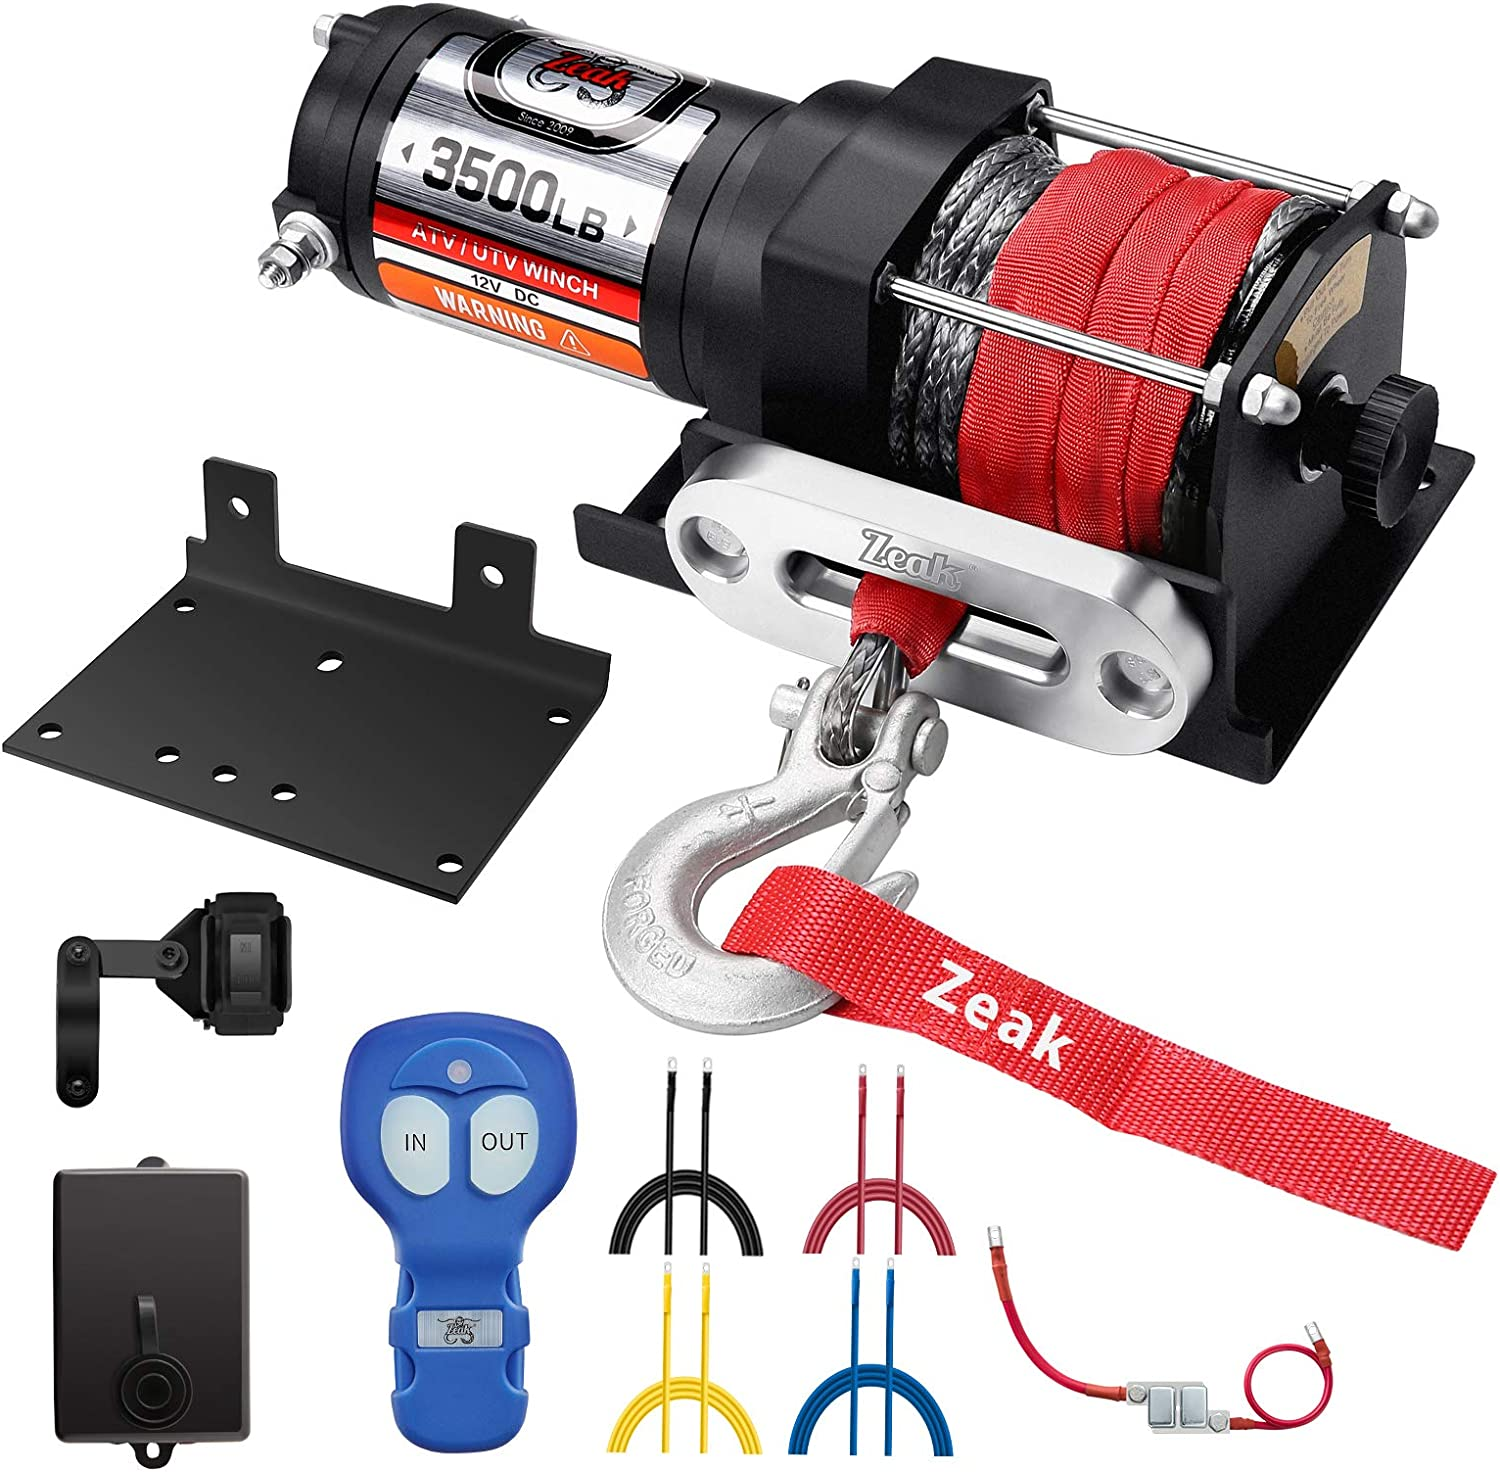 ZEAK 3500 lb. Advanced 12V DC Electric Winch, Off Road Waterproof, Synthetic Rope, Mount, for Sports car, ATV